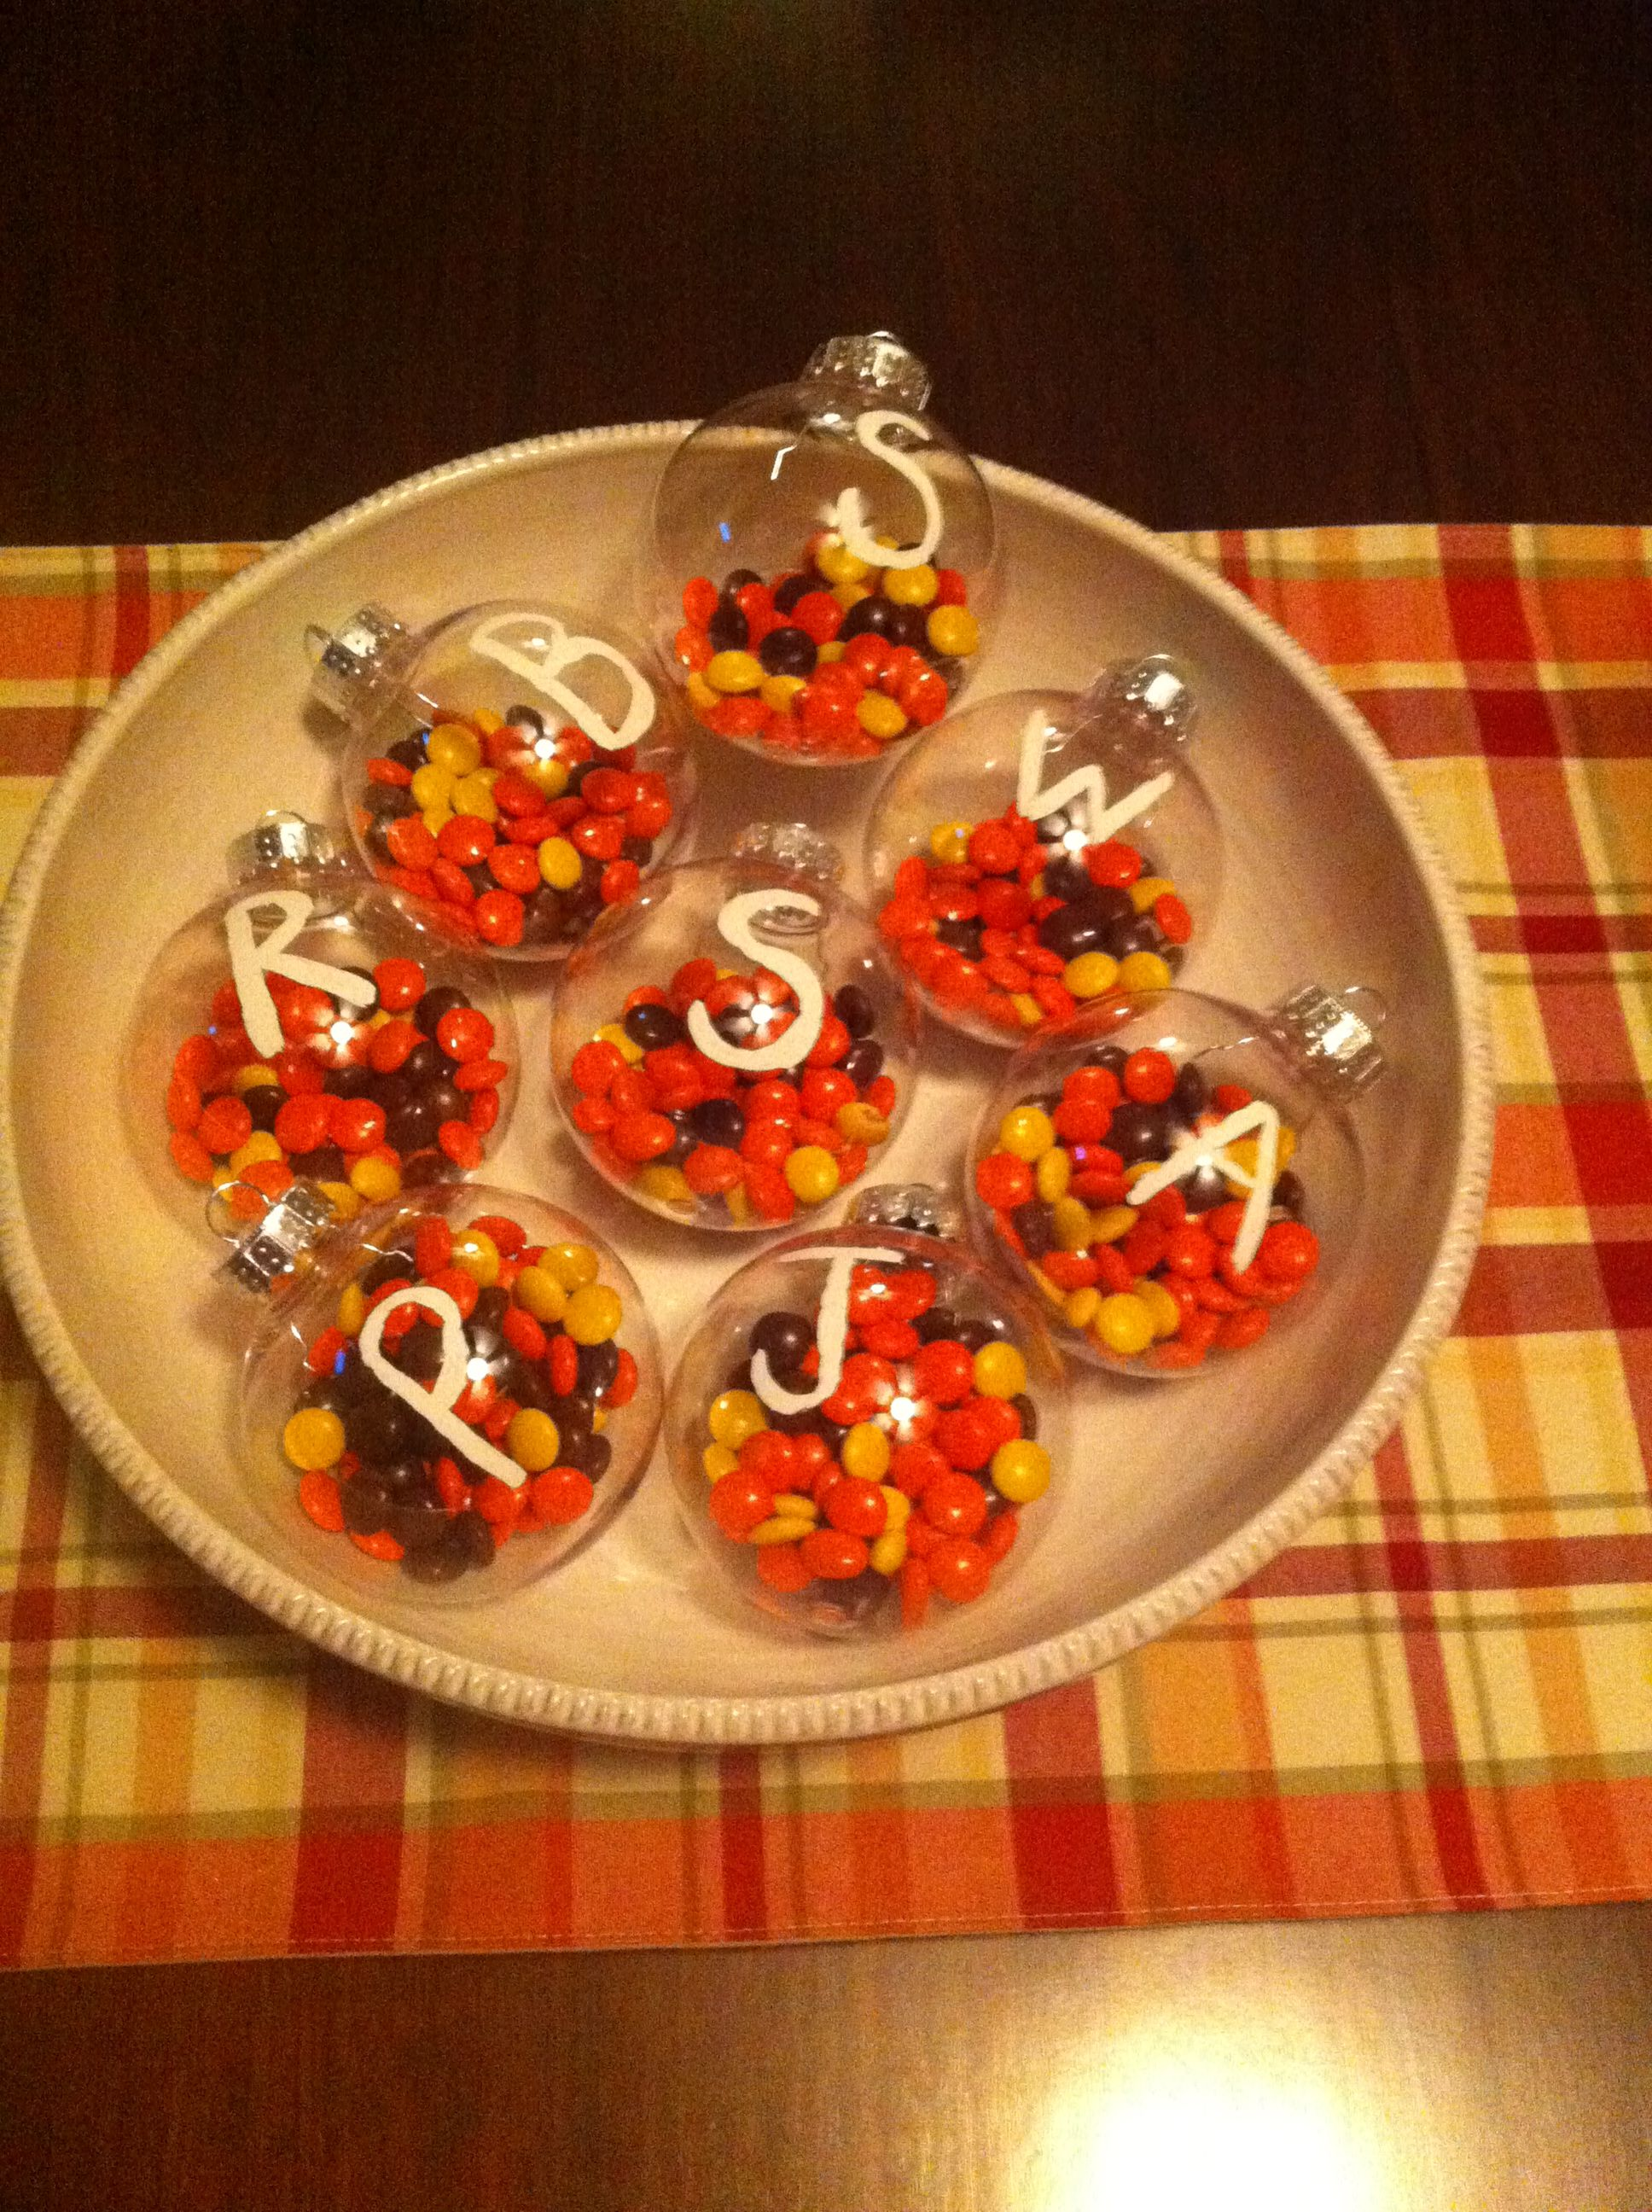 walmart 88 cents ornaments a white pen and reeses pieces candy combine thanksgiving